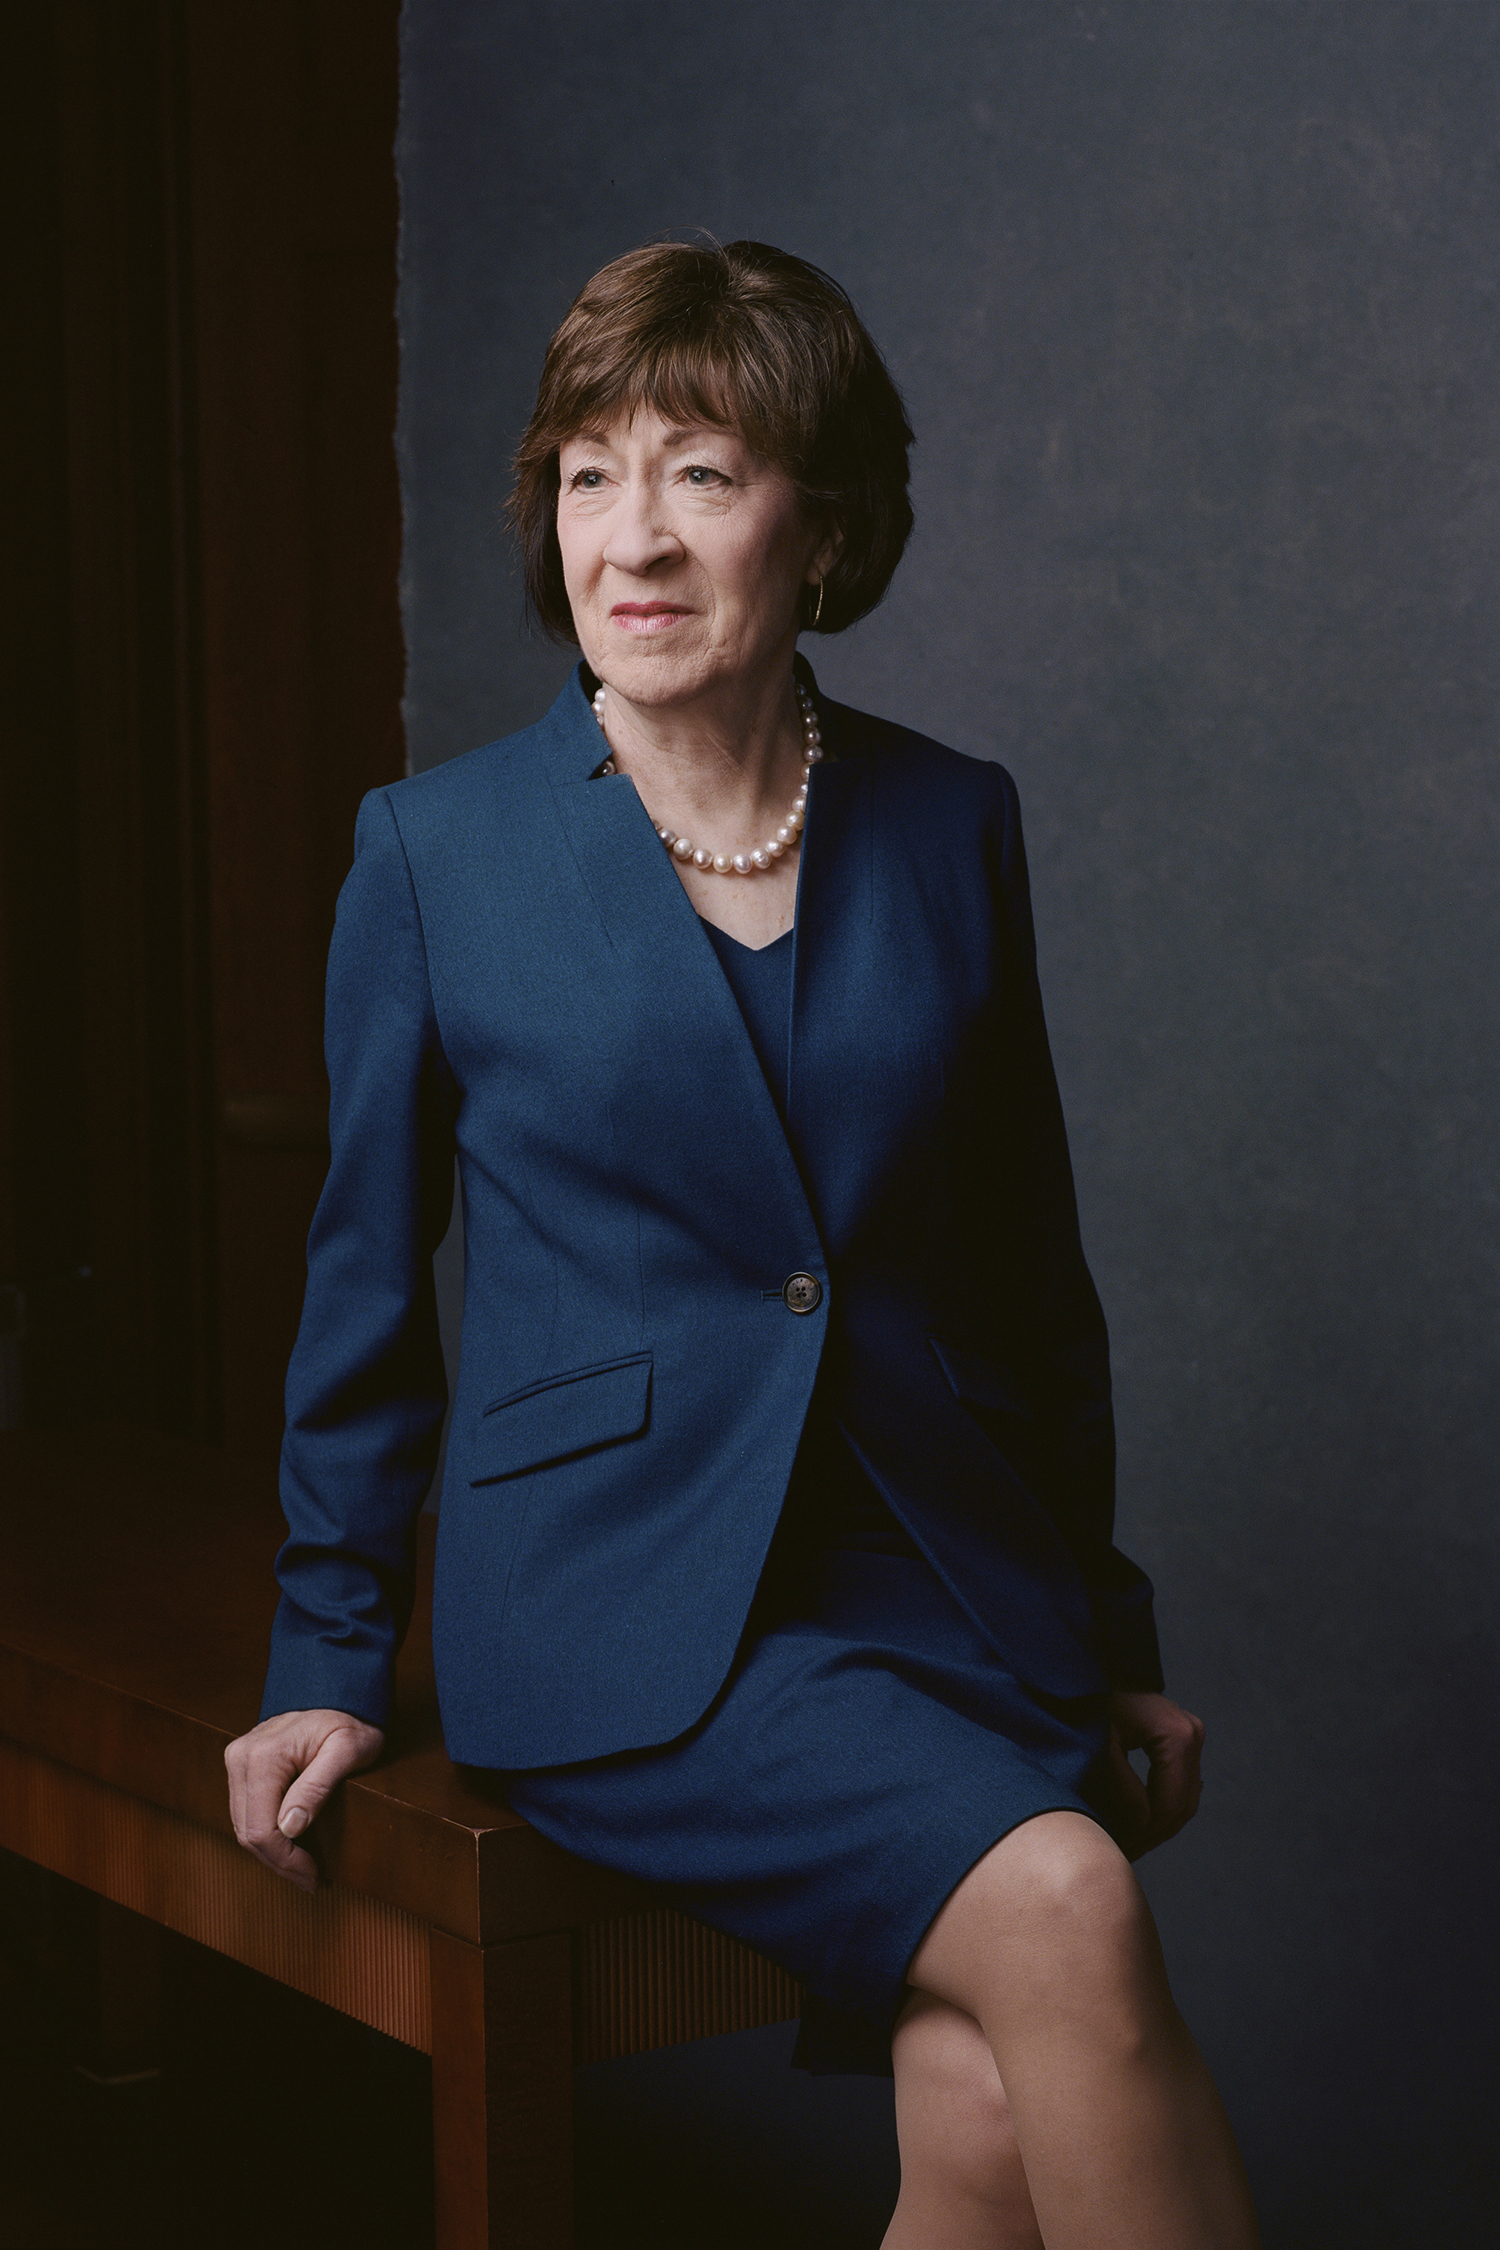 ***** HOLD FOR WOMEN IN CONGRESS PROJECT**** Susan Collins (Celeste Sloman for The New York Times)                              NYTCREDIT: Celeste Sloman for The New York Times